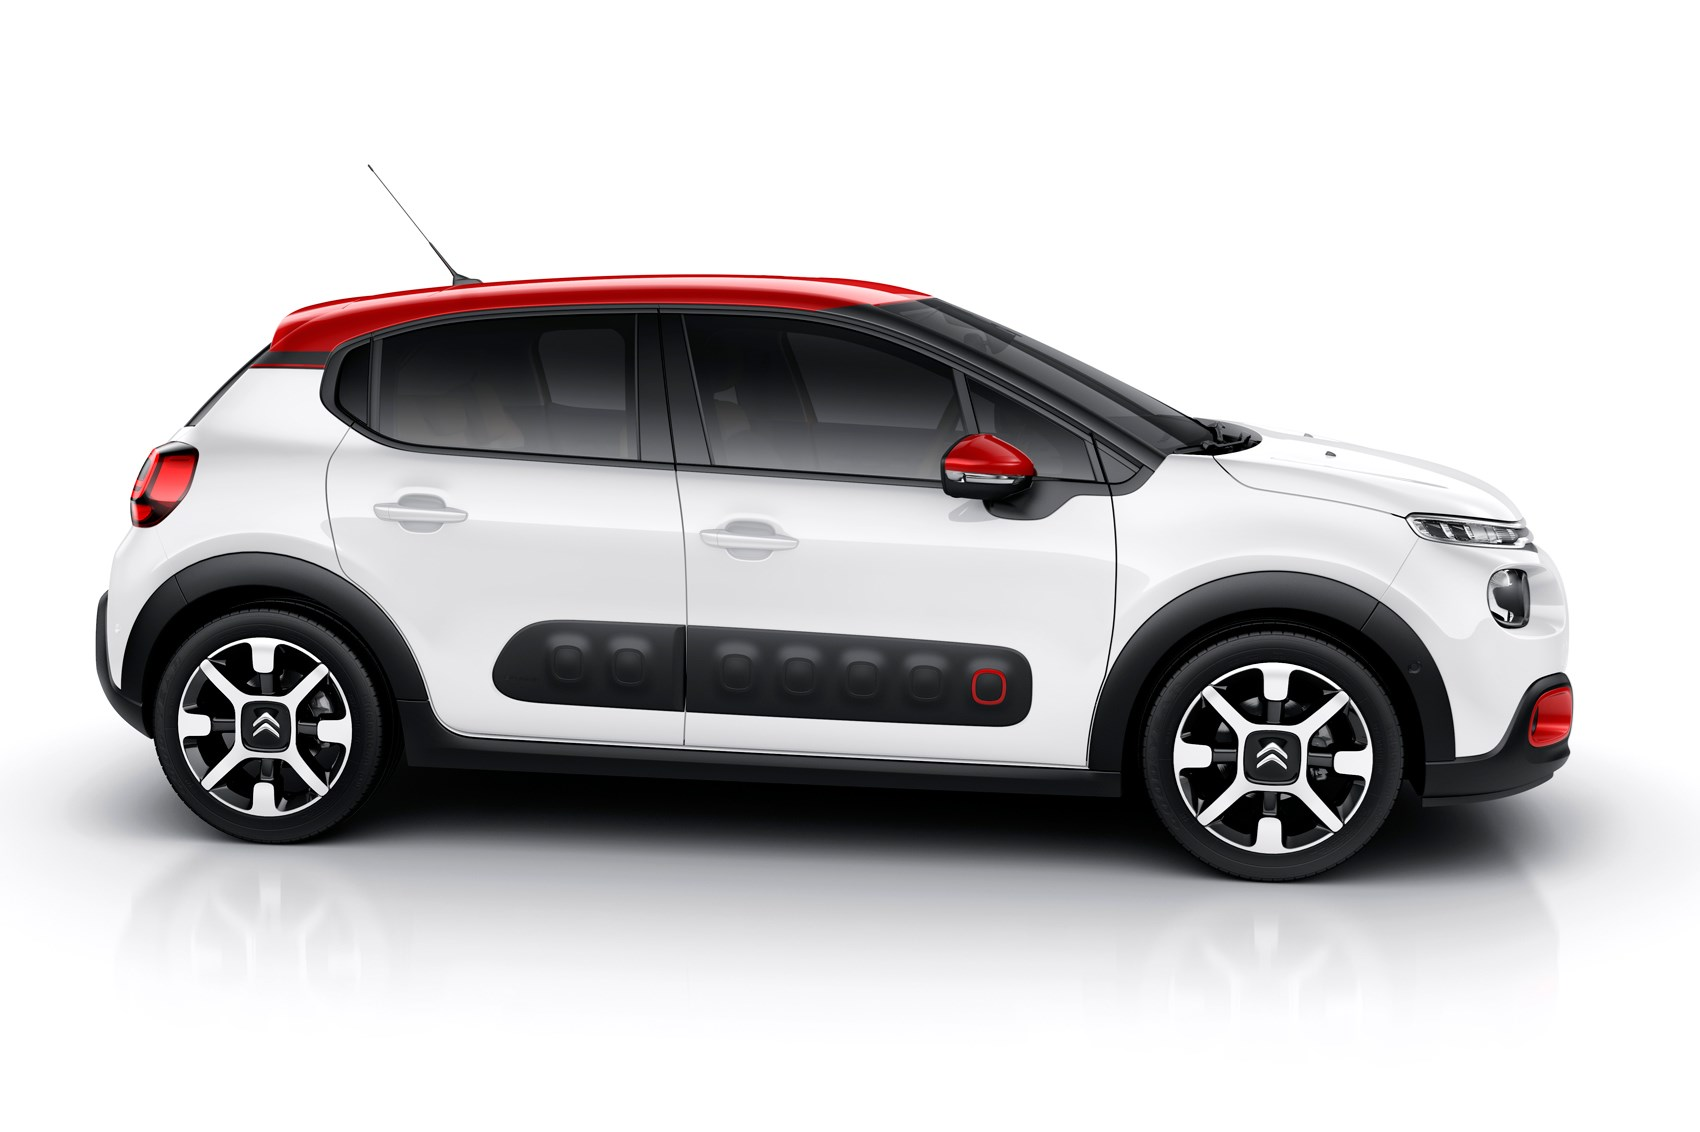 new 2017 citroen c3 revealed it 39 s cactus take 2 by car. Black Bedroom Furniture Sets. Home Design Ideas